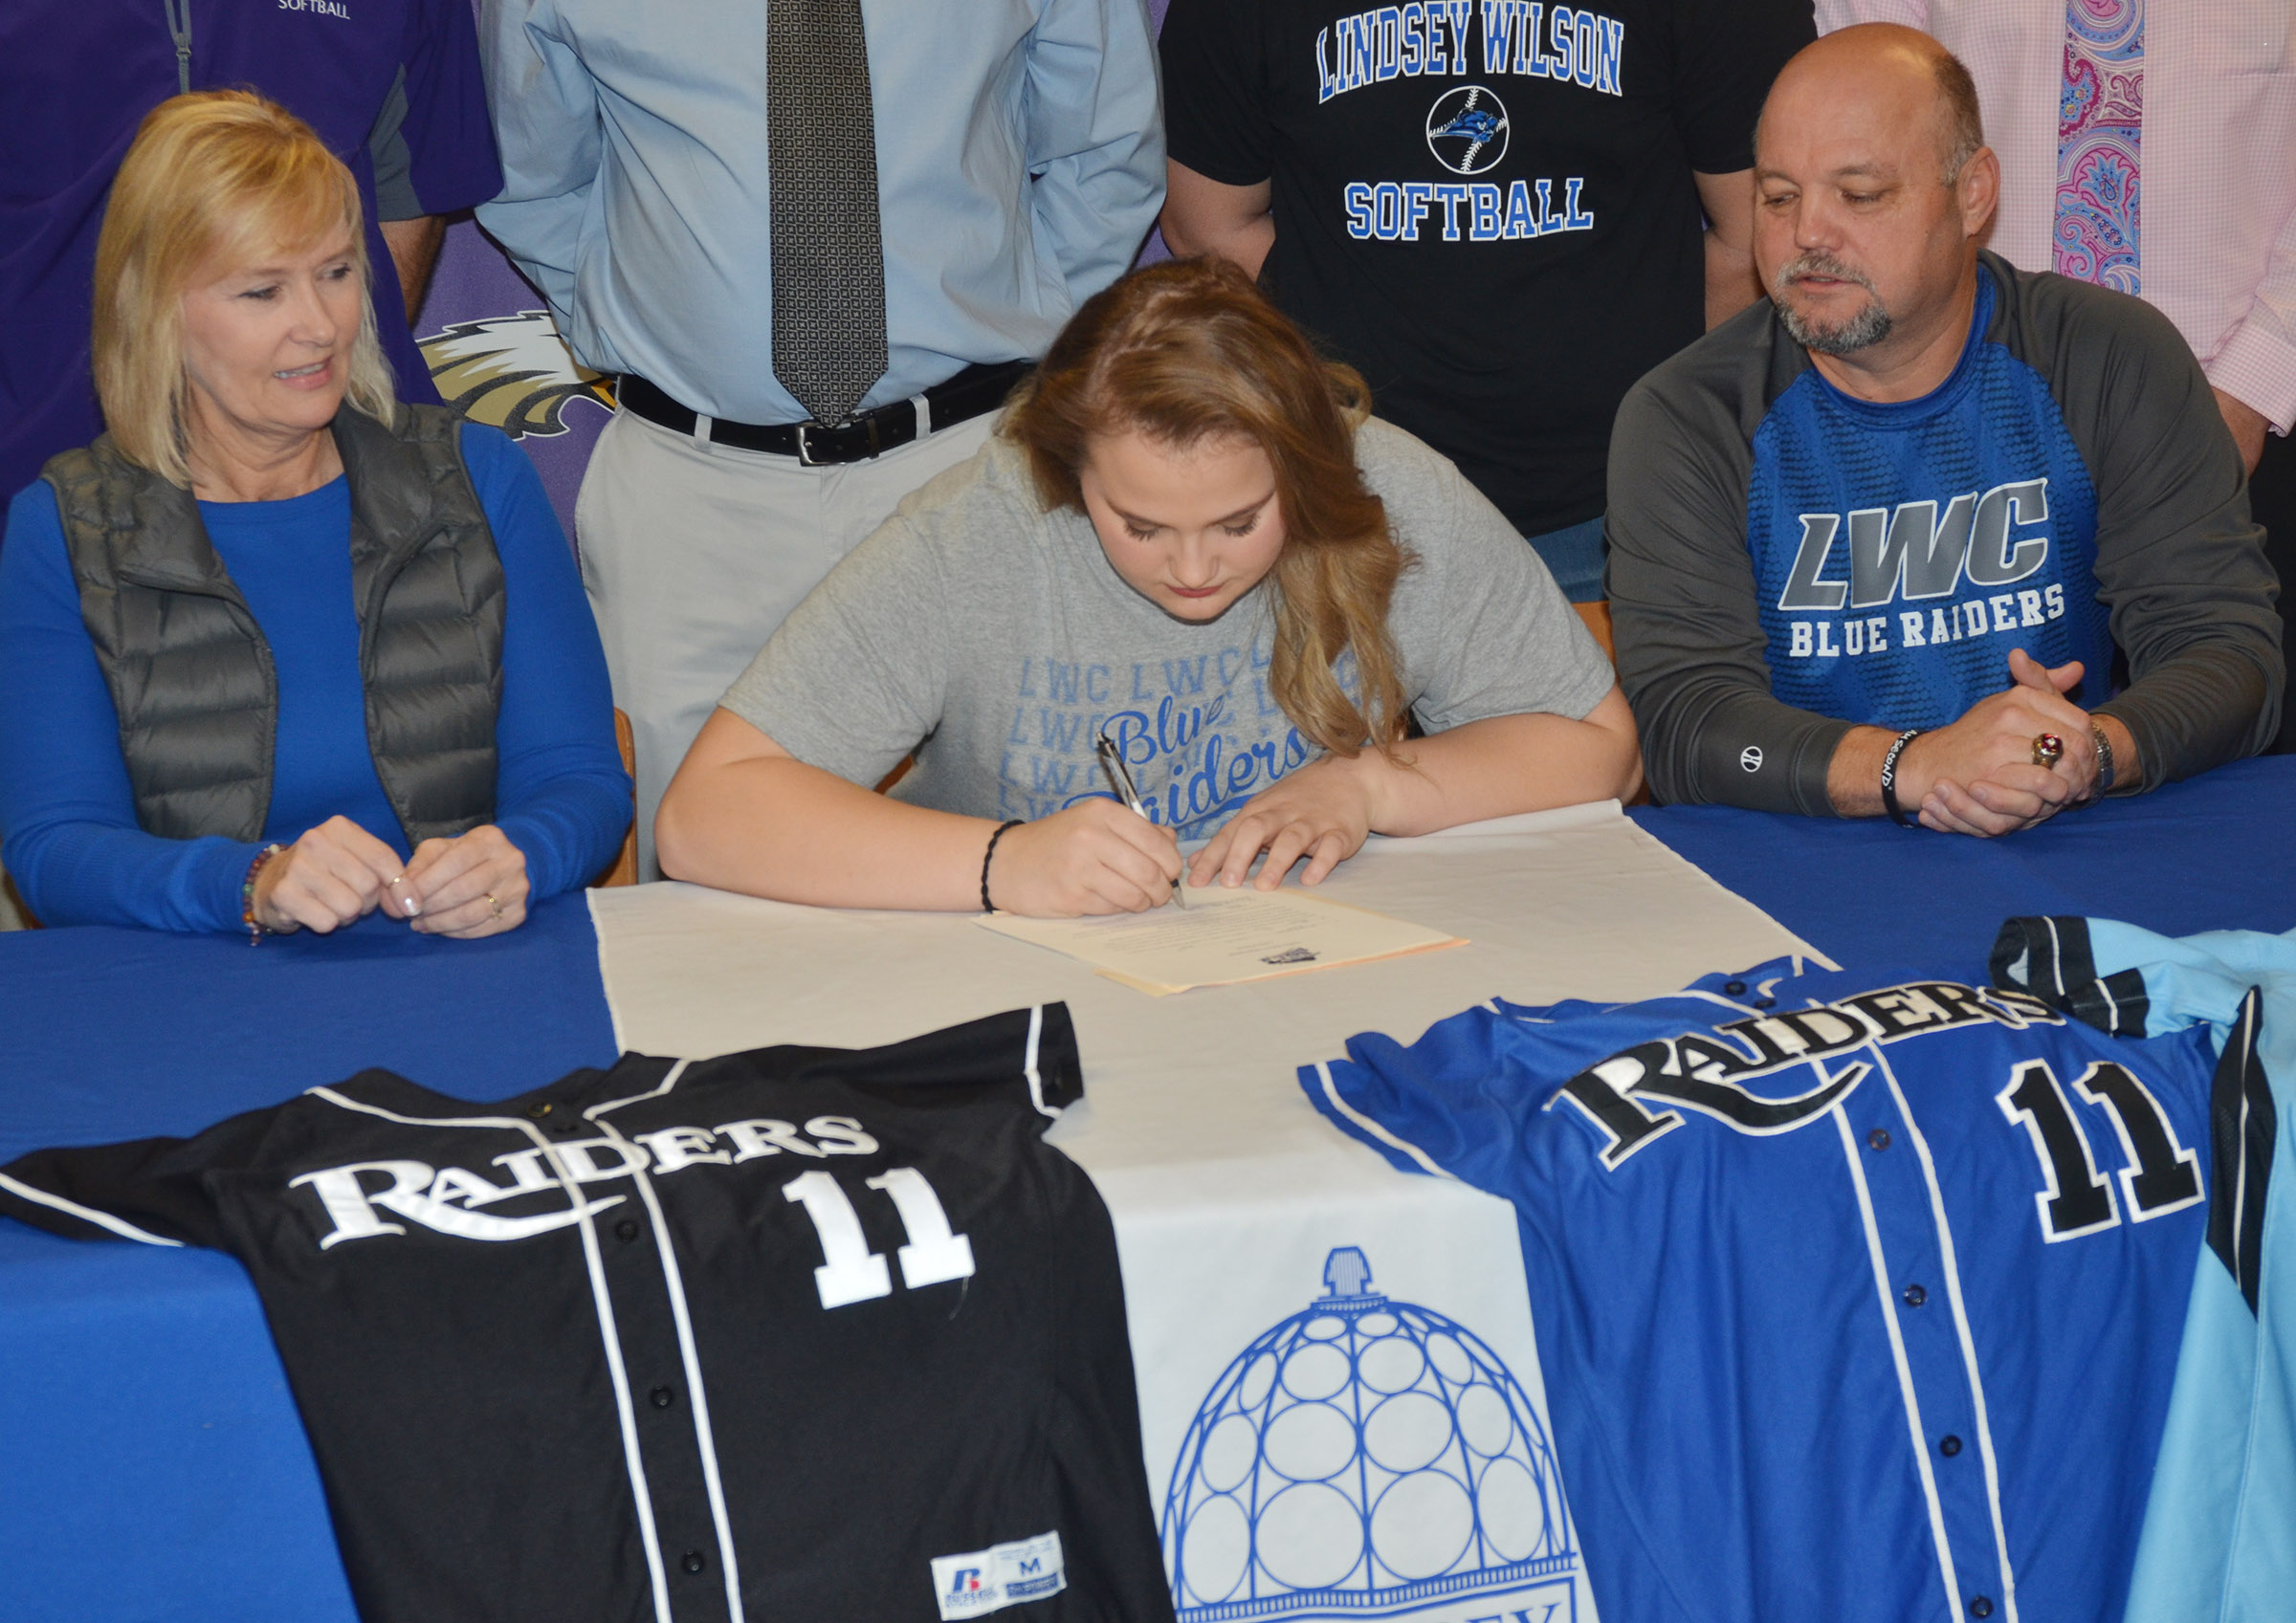 CHS senior Brenna Wethington has signed to continue her softball career at Lindsey Wilson College. She is pictured with her parents, Sheila and John Wethington.